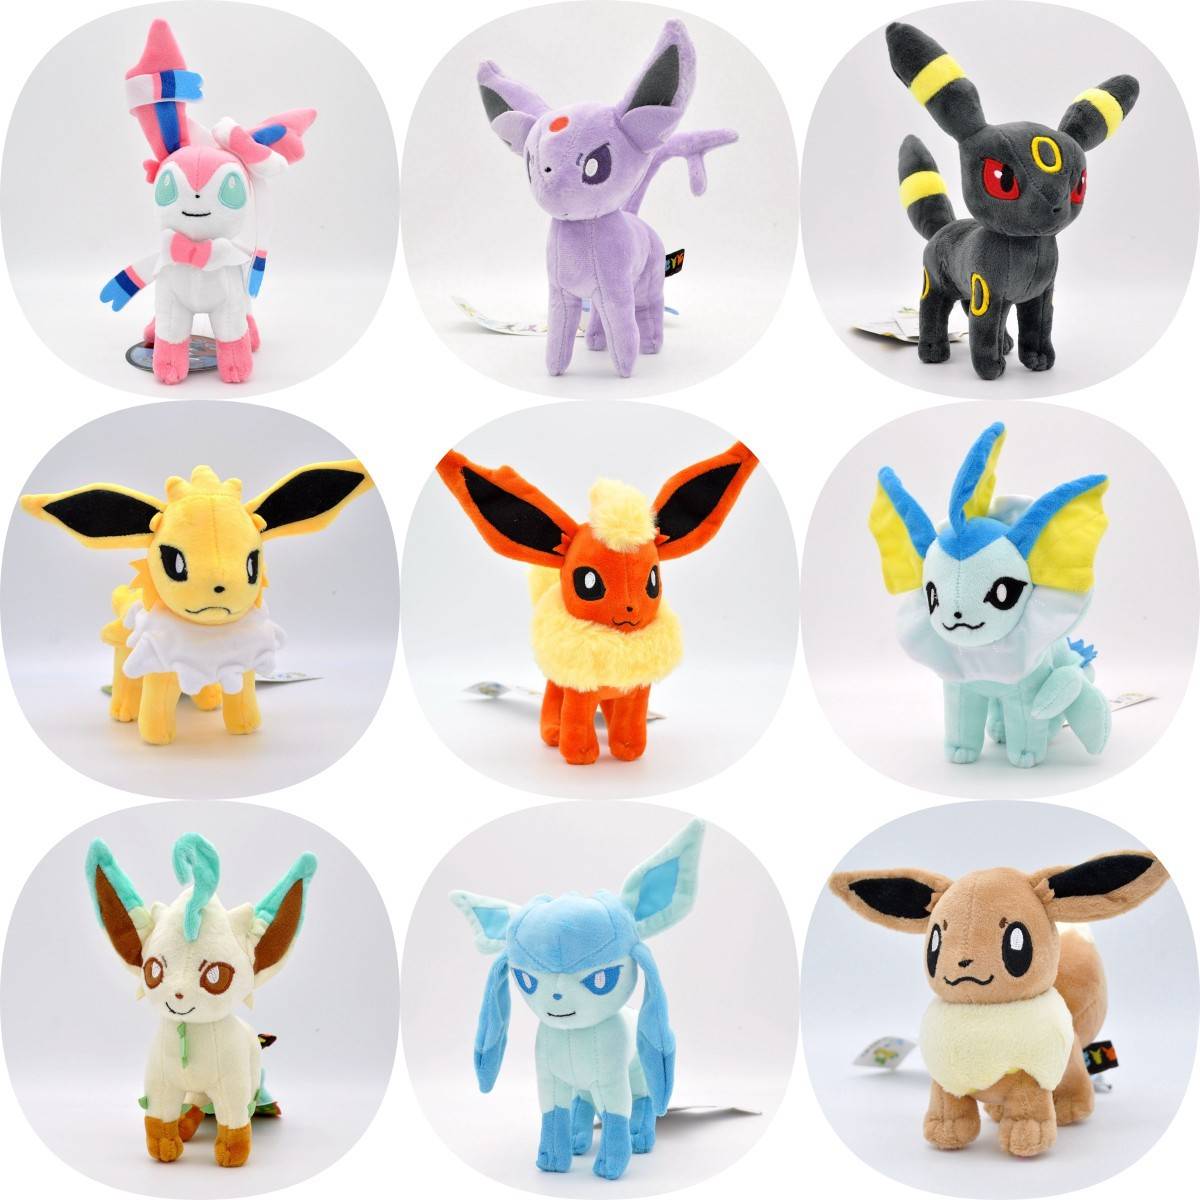 9-styles-takara-tomy-font-b-pokemon-b-font-pikachu-squirtle-stuffed-hobby-anime-plush-doll-toys-for-children-christmas-event-gift